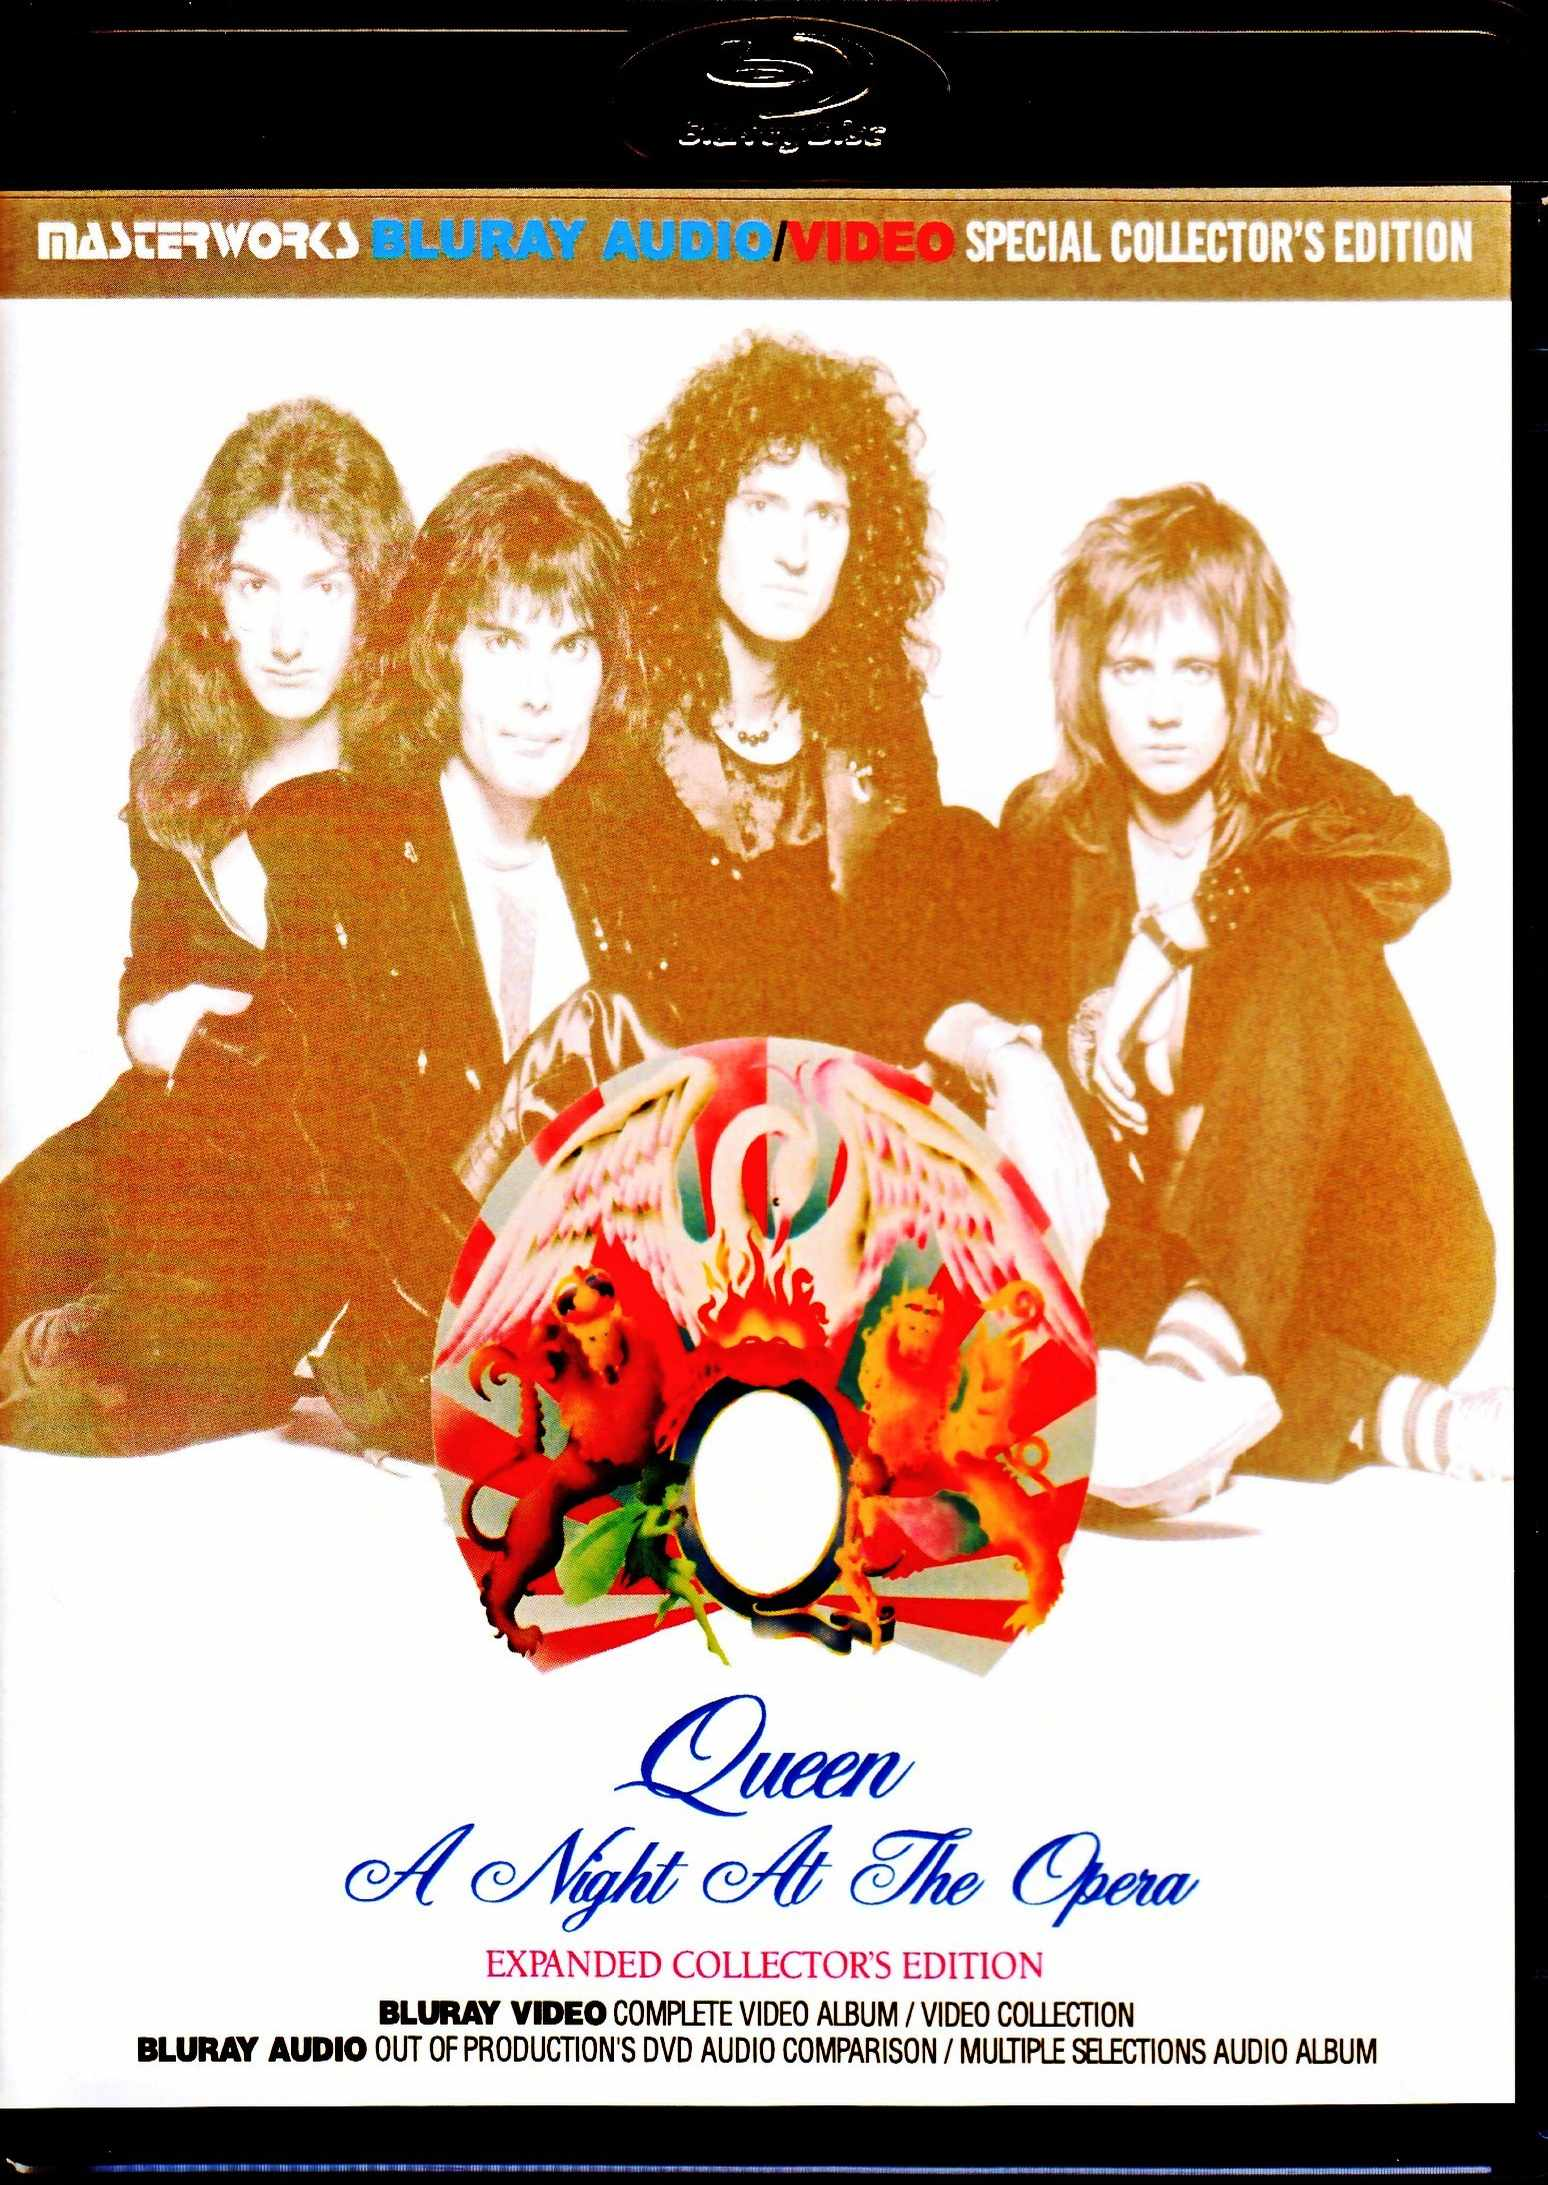 Queen クィーン/オペラ座の夜 A Night at the Opera Blu-Ray Expanded Collector's Edition